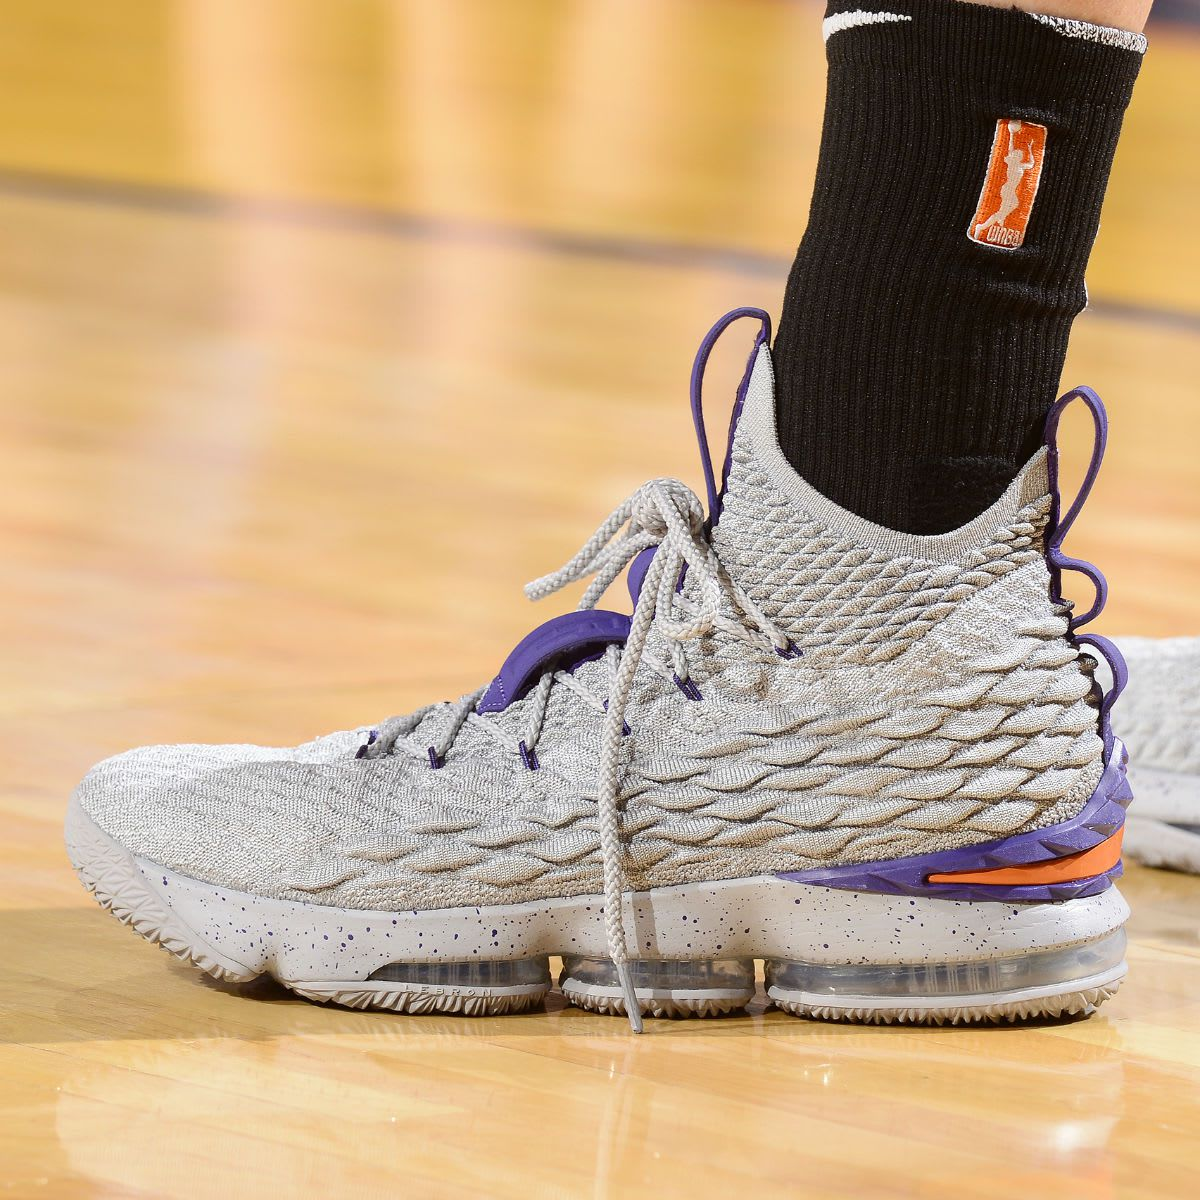 hot sale online e5f95 abe79 Diana Taurasi has the best collection of LeBron 15 sneakers ...